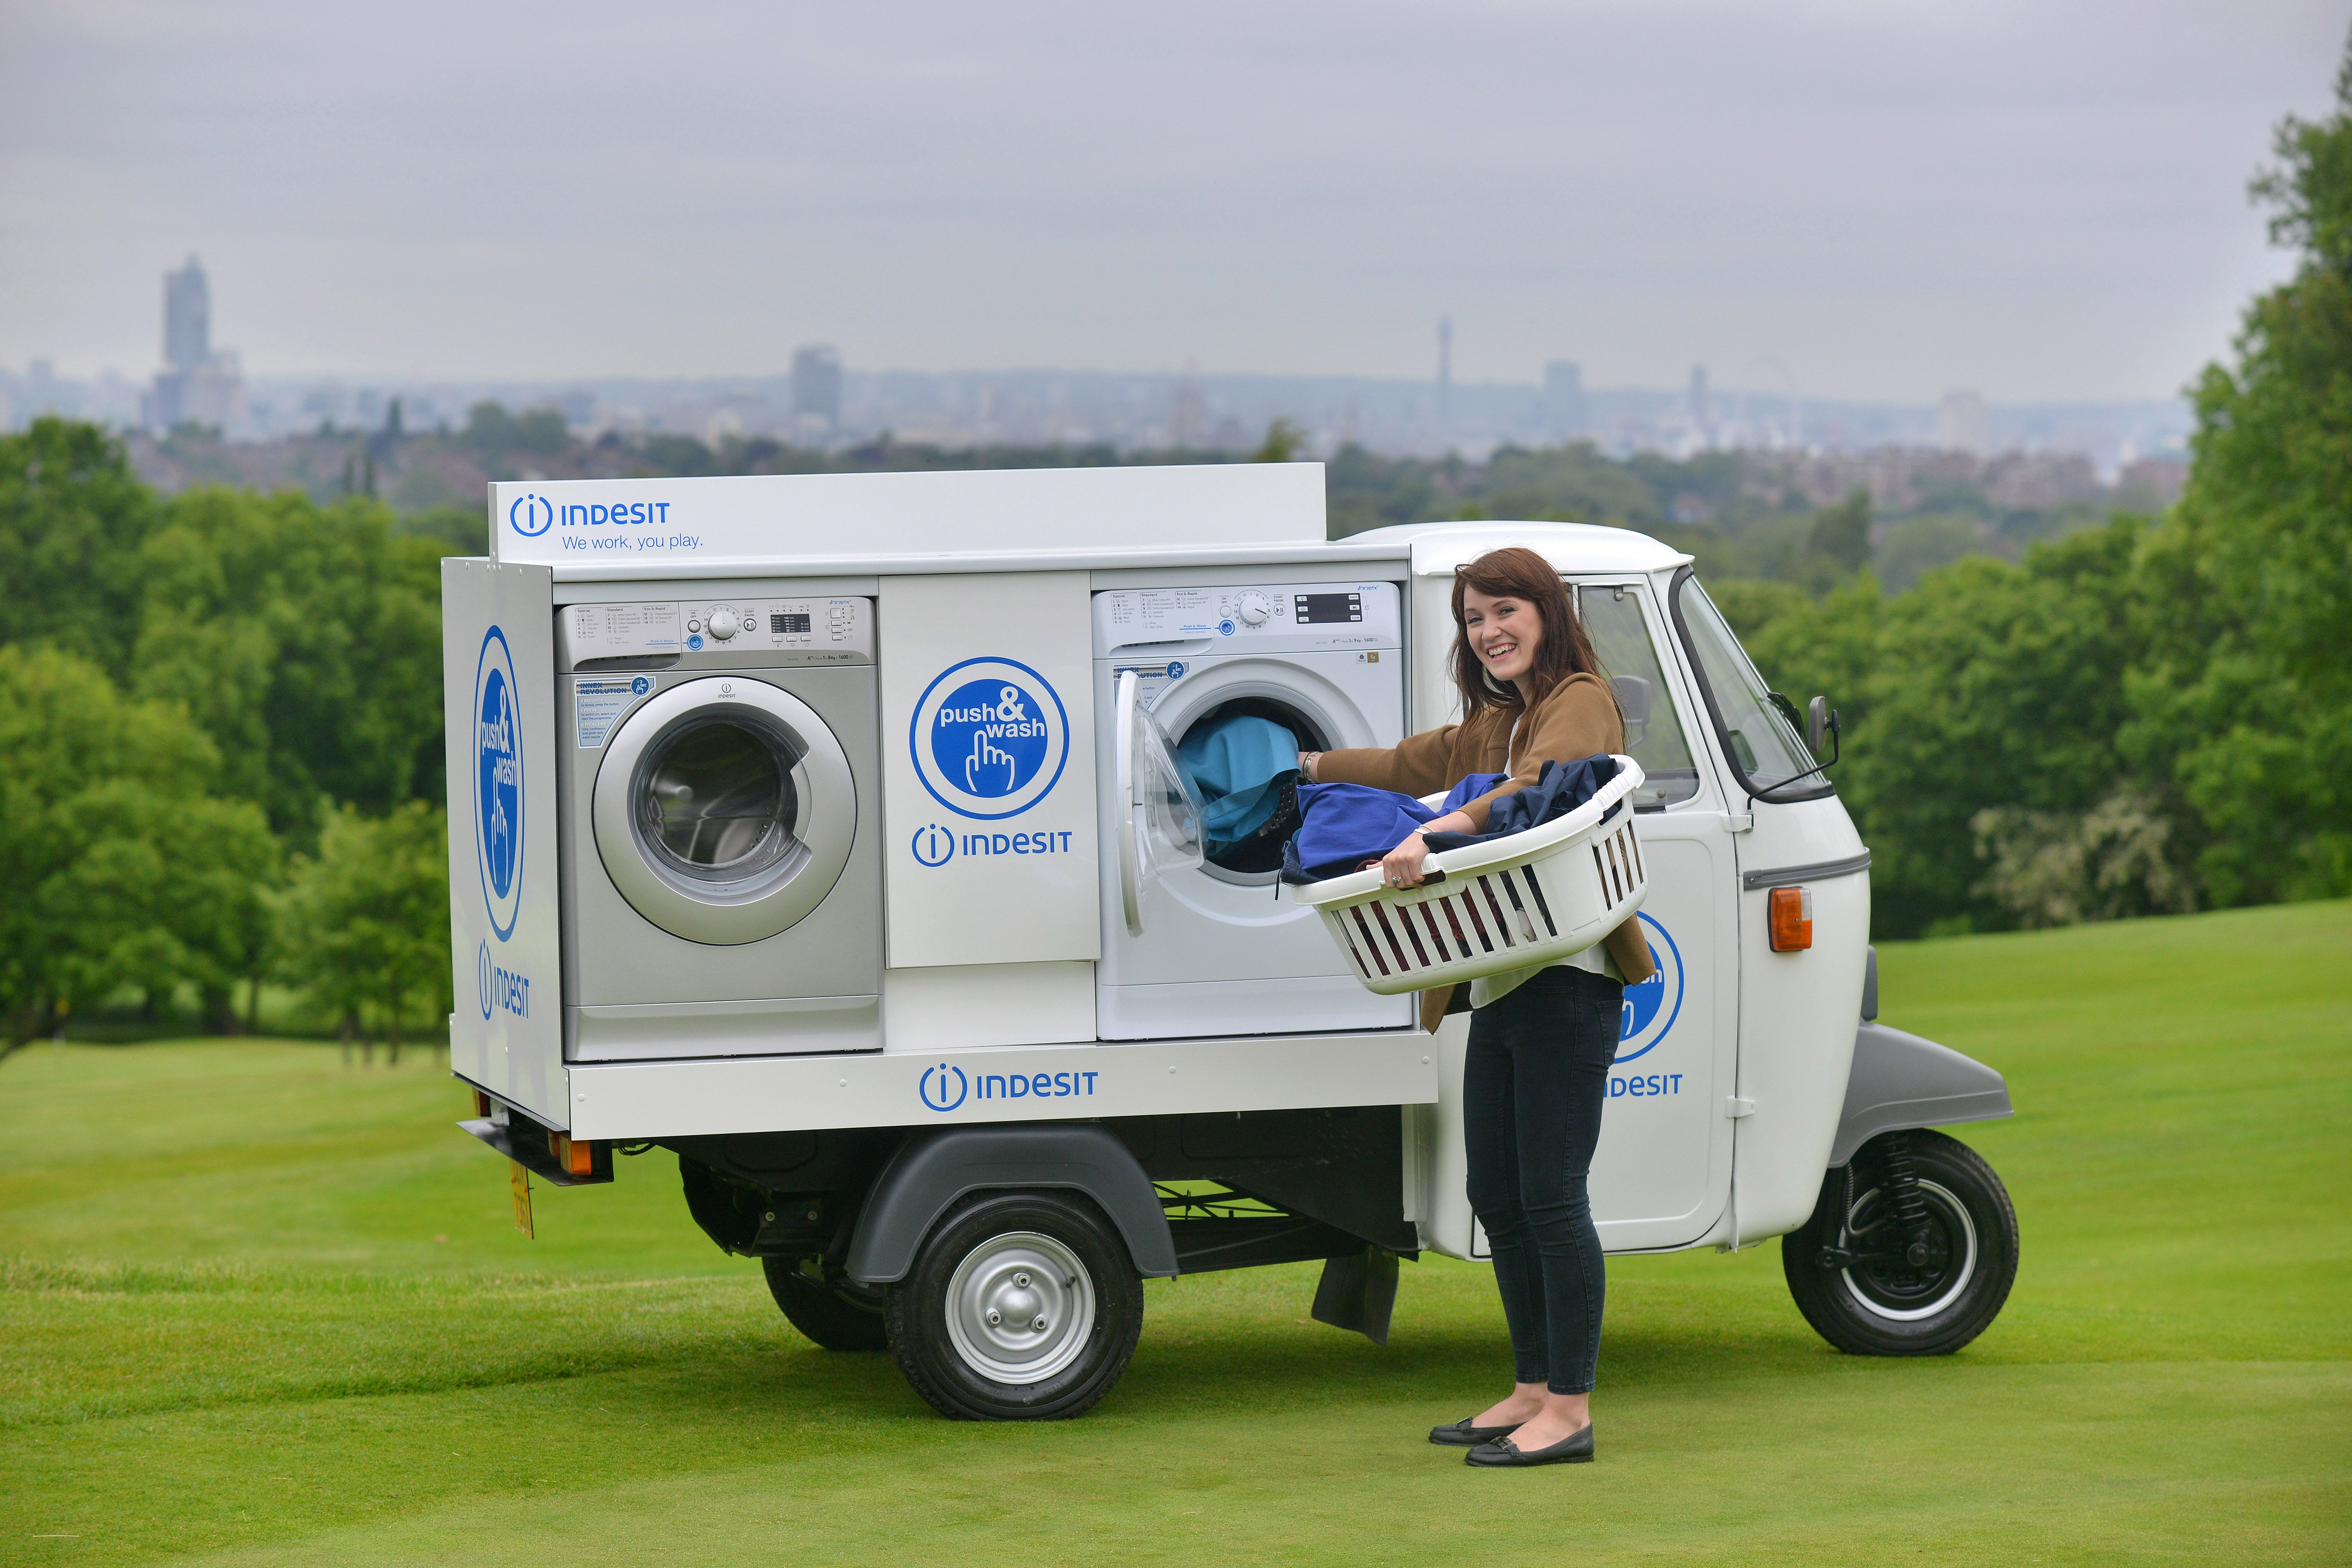 Indesit Launch The World S First Socially Powered Mobile Laundry